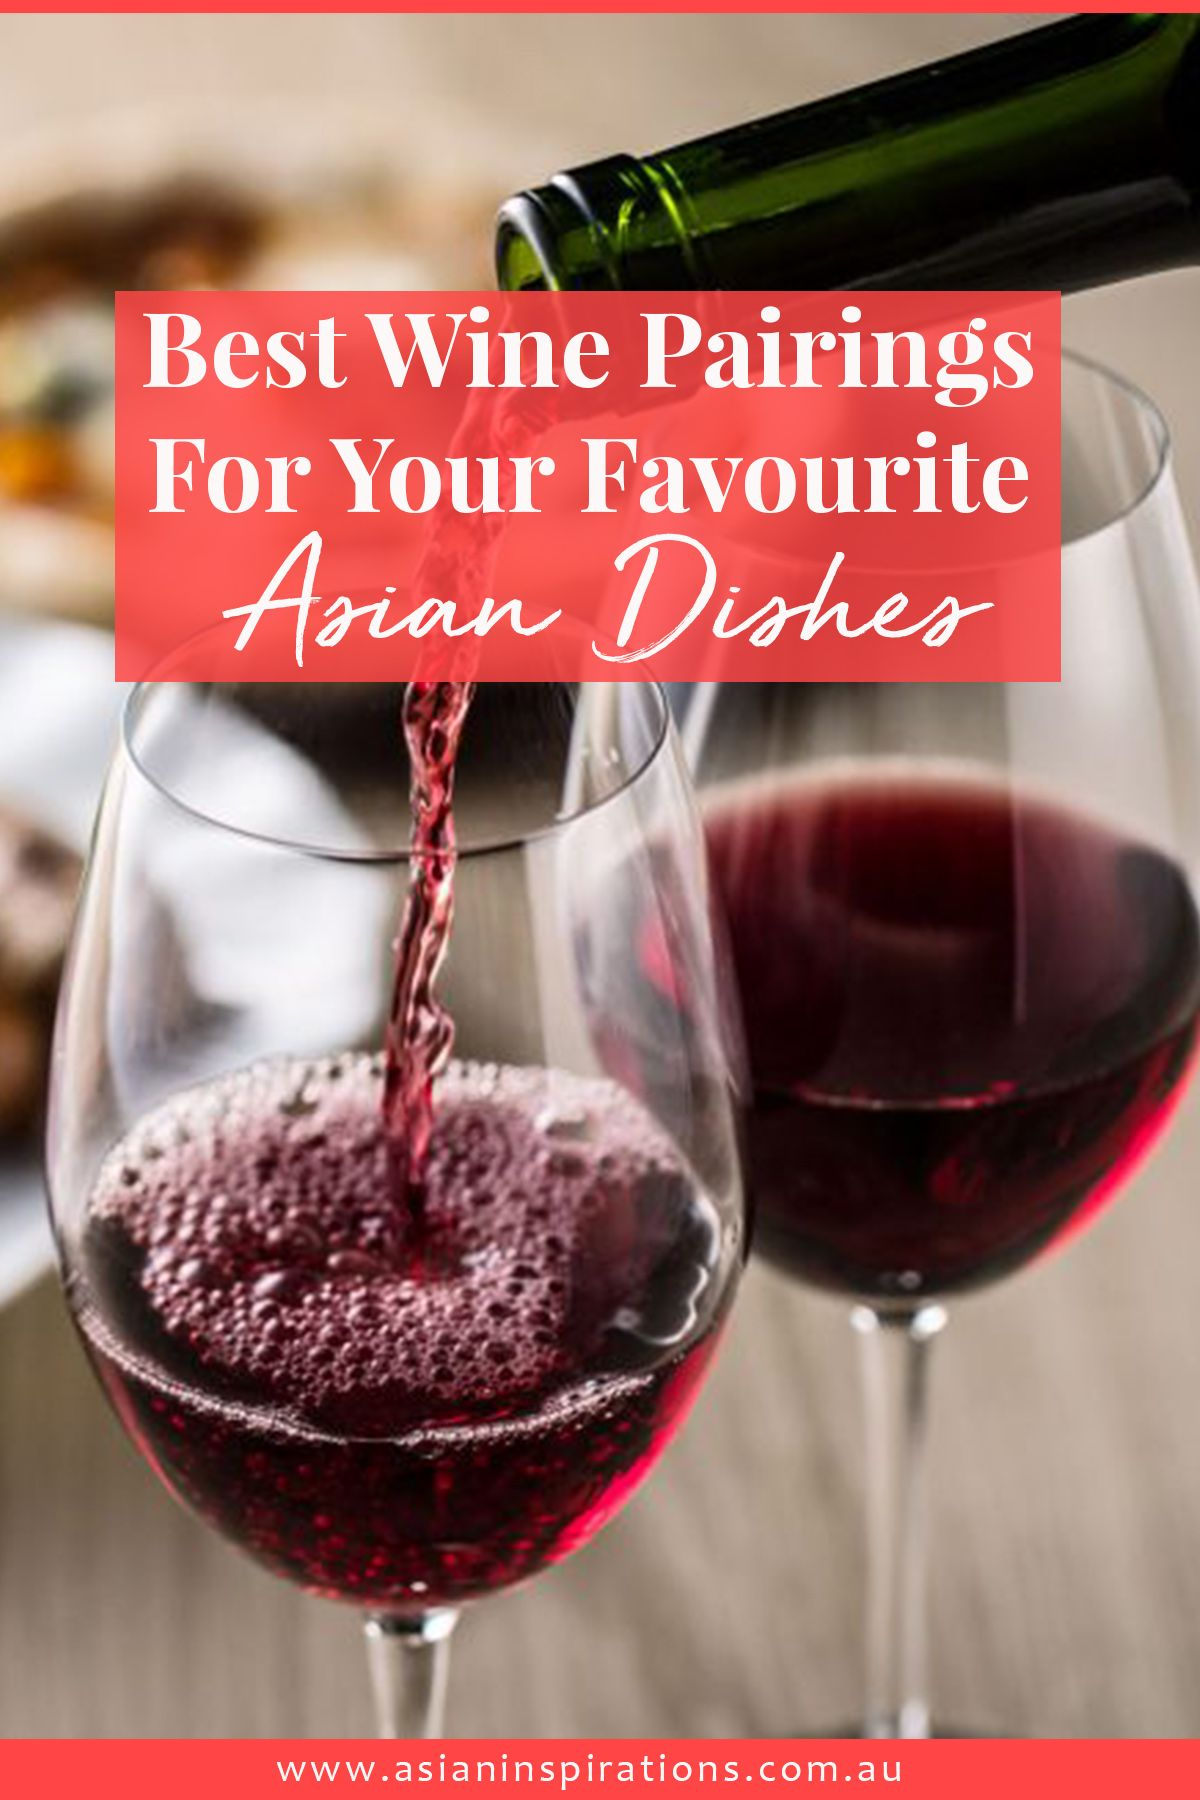 Best Wine Pairings For Your Favourite Asian Dishes Asian Inspirations In 2020 Asian Dishes Wine Pairing Asian Flavors